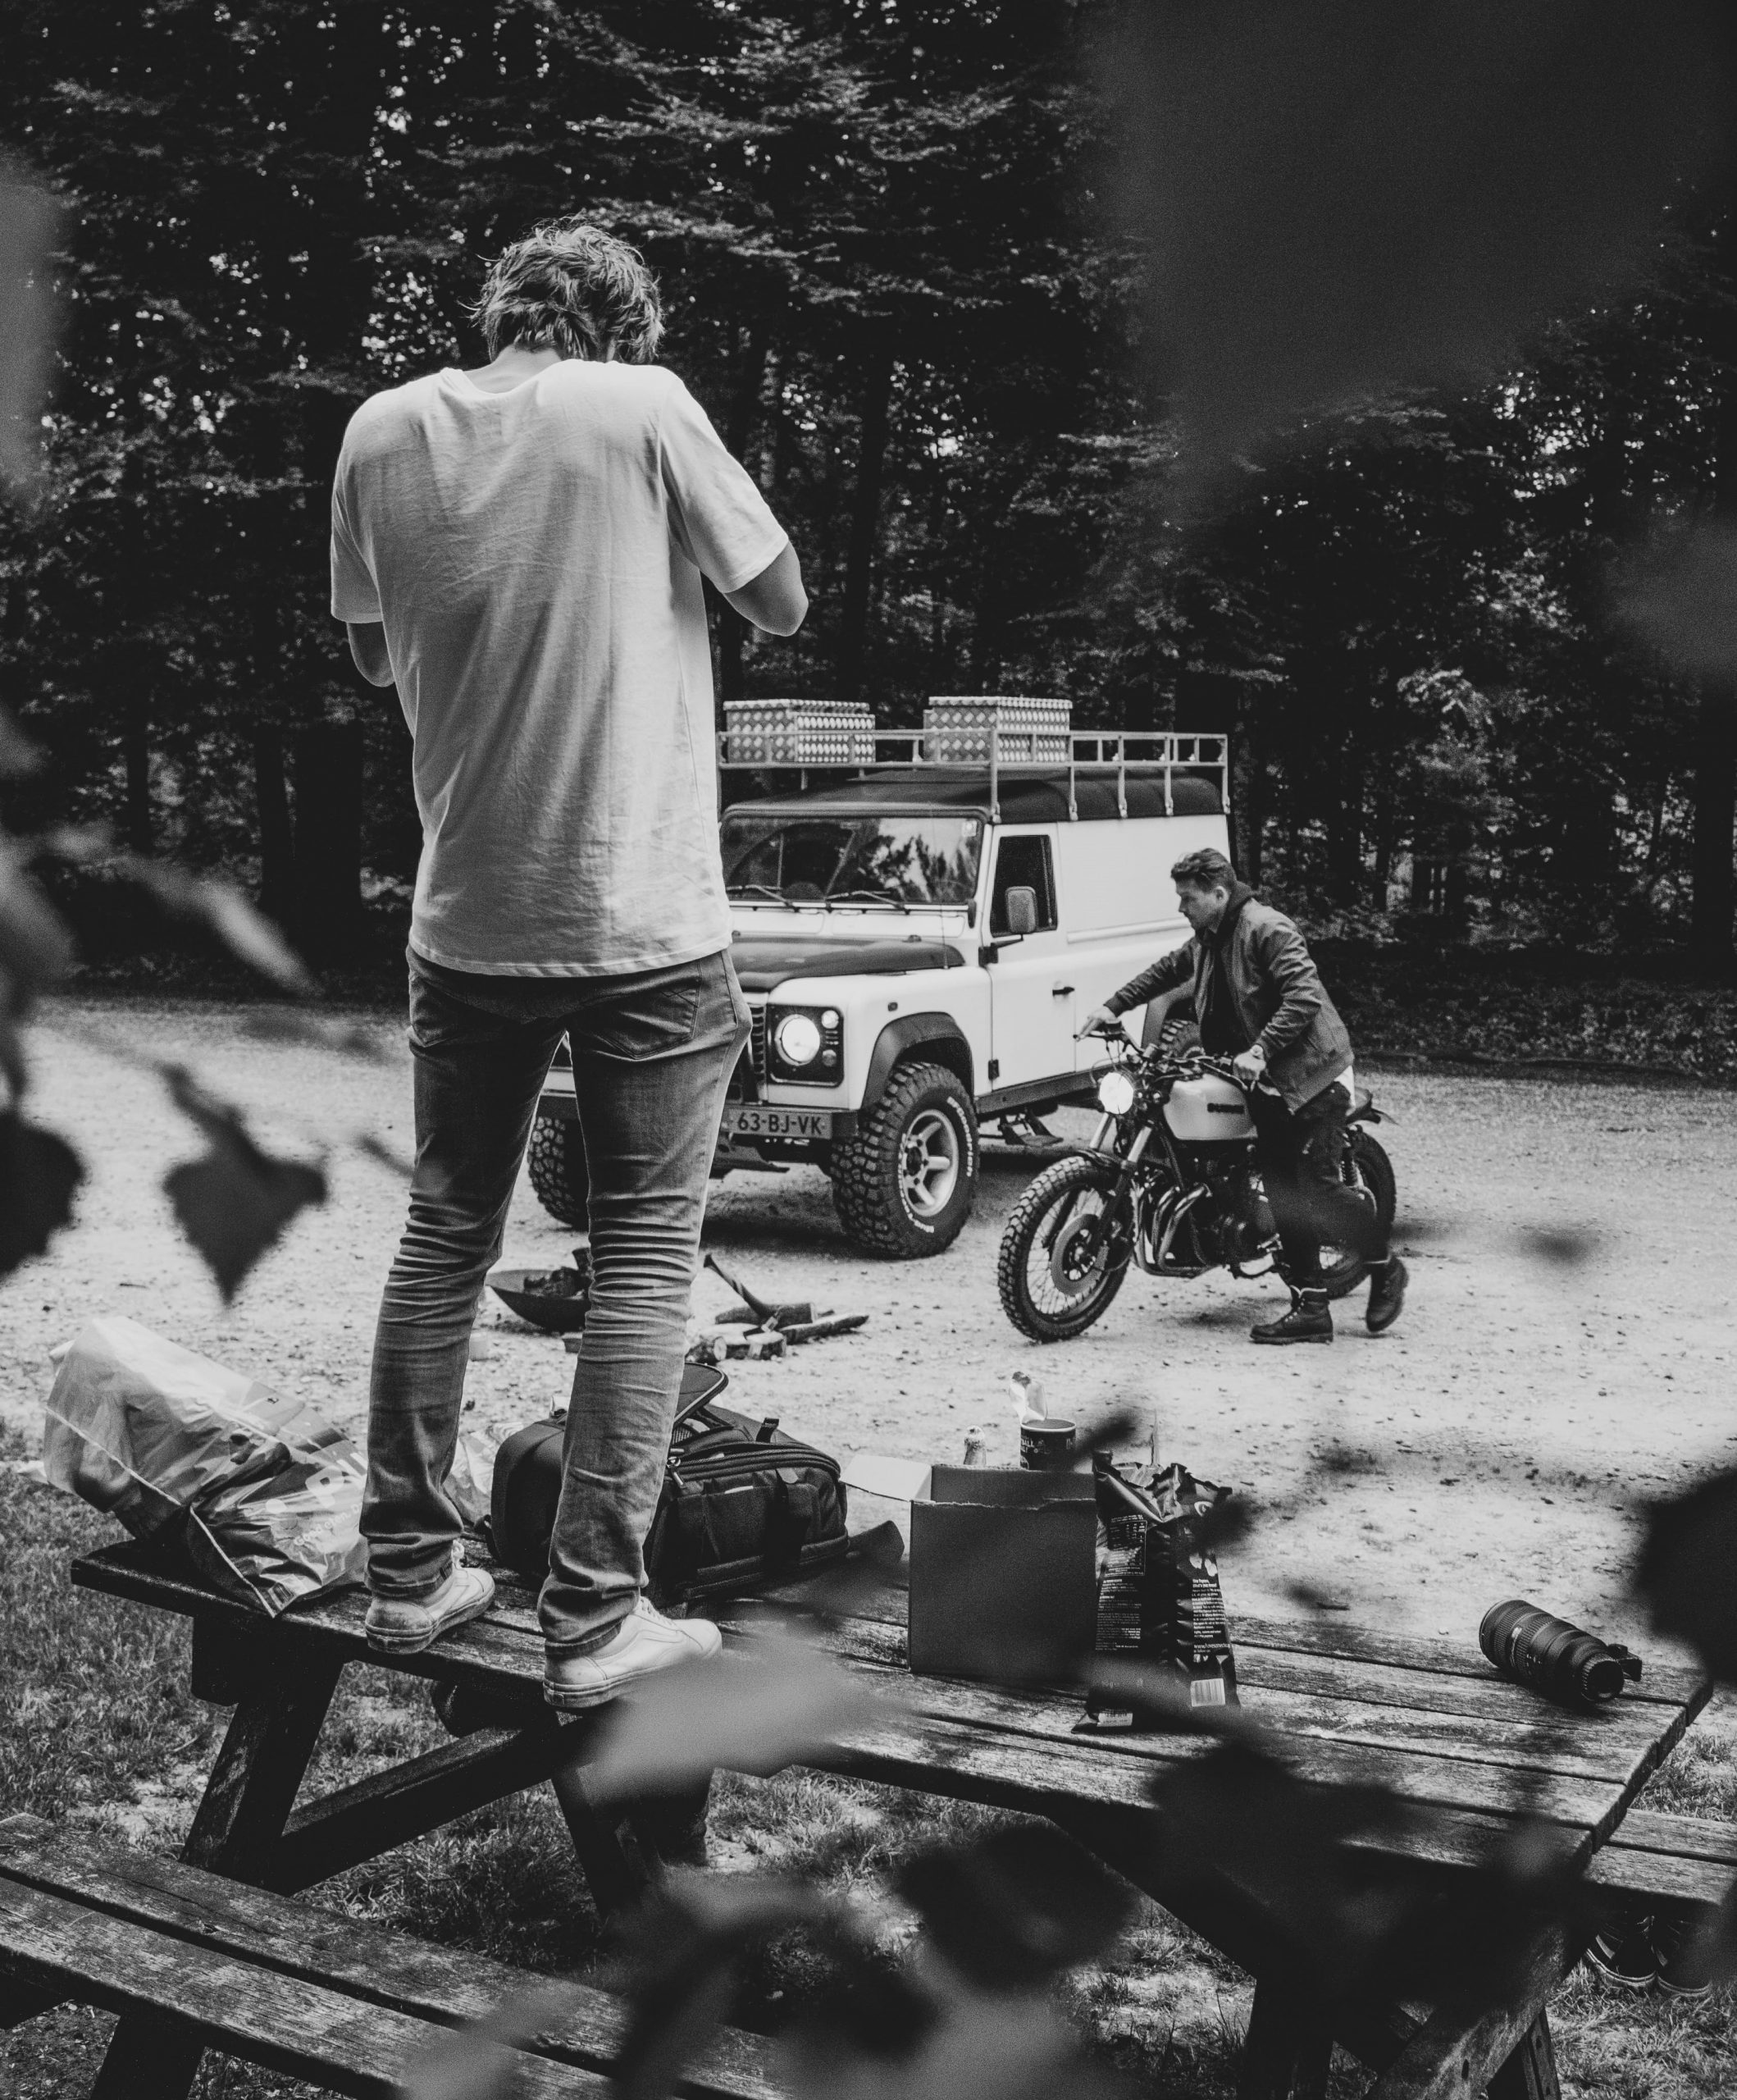 Photographer taking image of biker stood on a bench documenting motorcycle trip